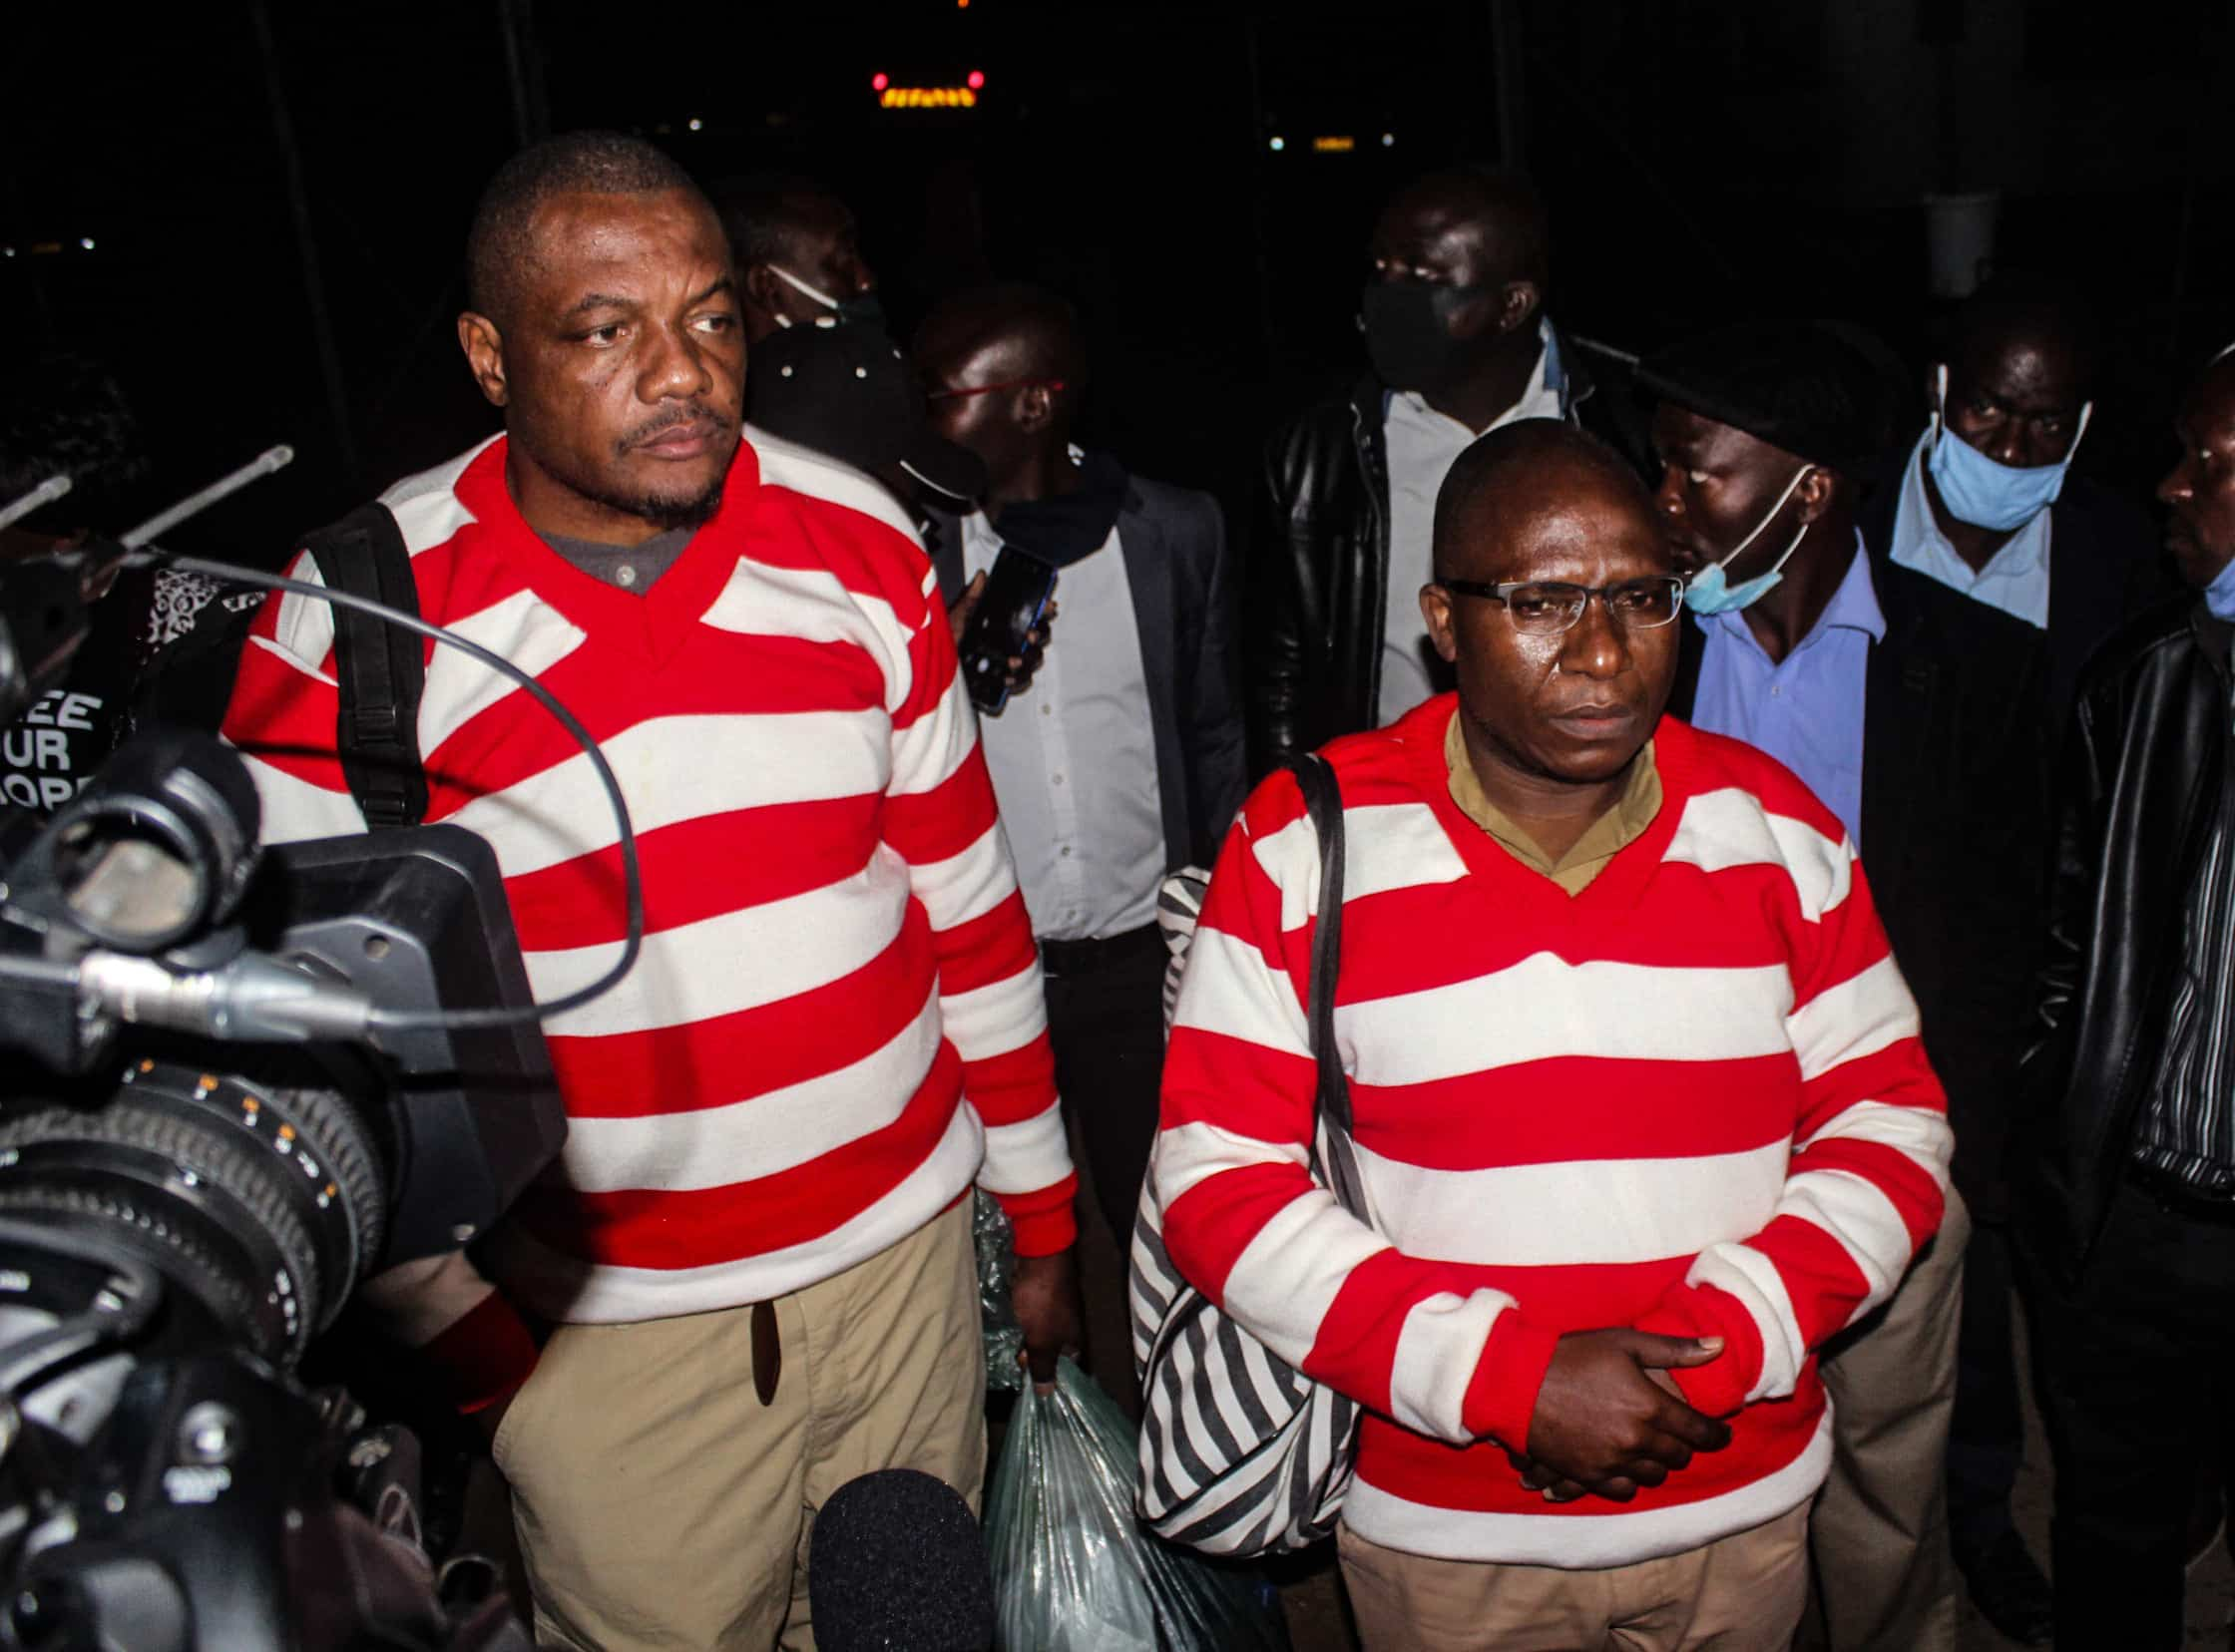 Ngarivhume speaks on jail nightmare, says Chamisa prison visit brought more woes